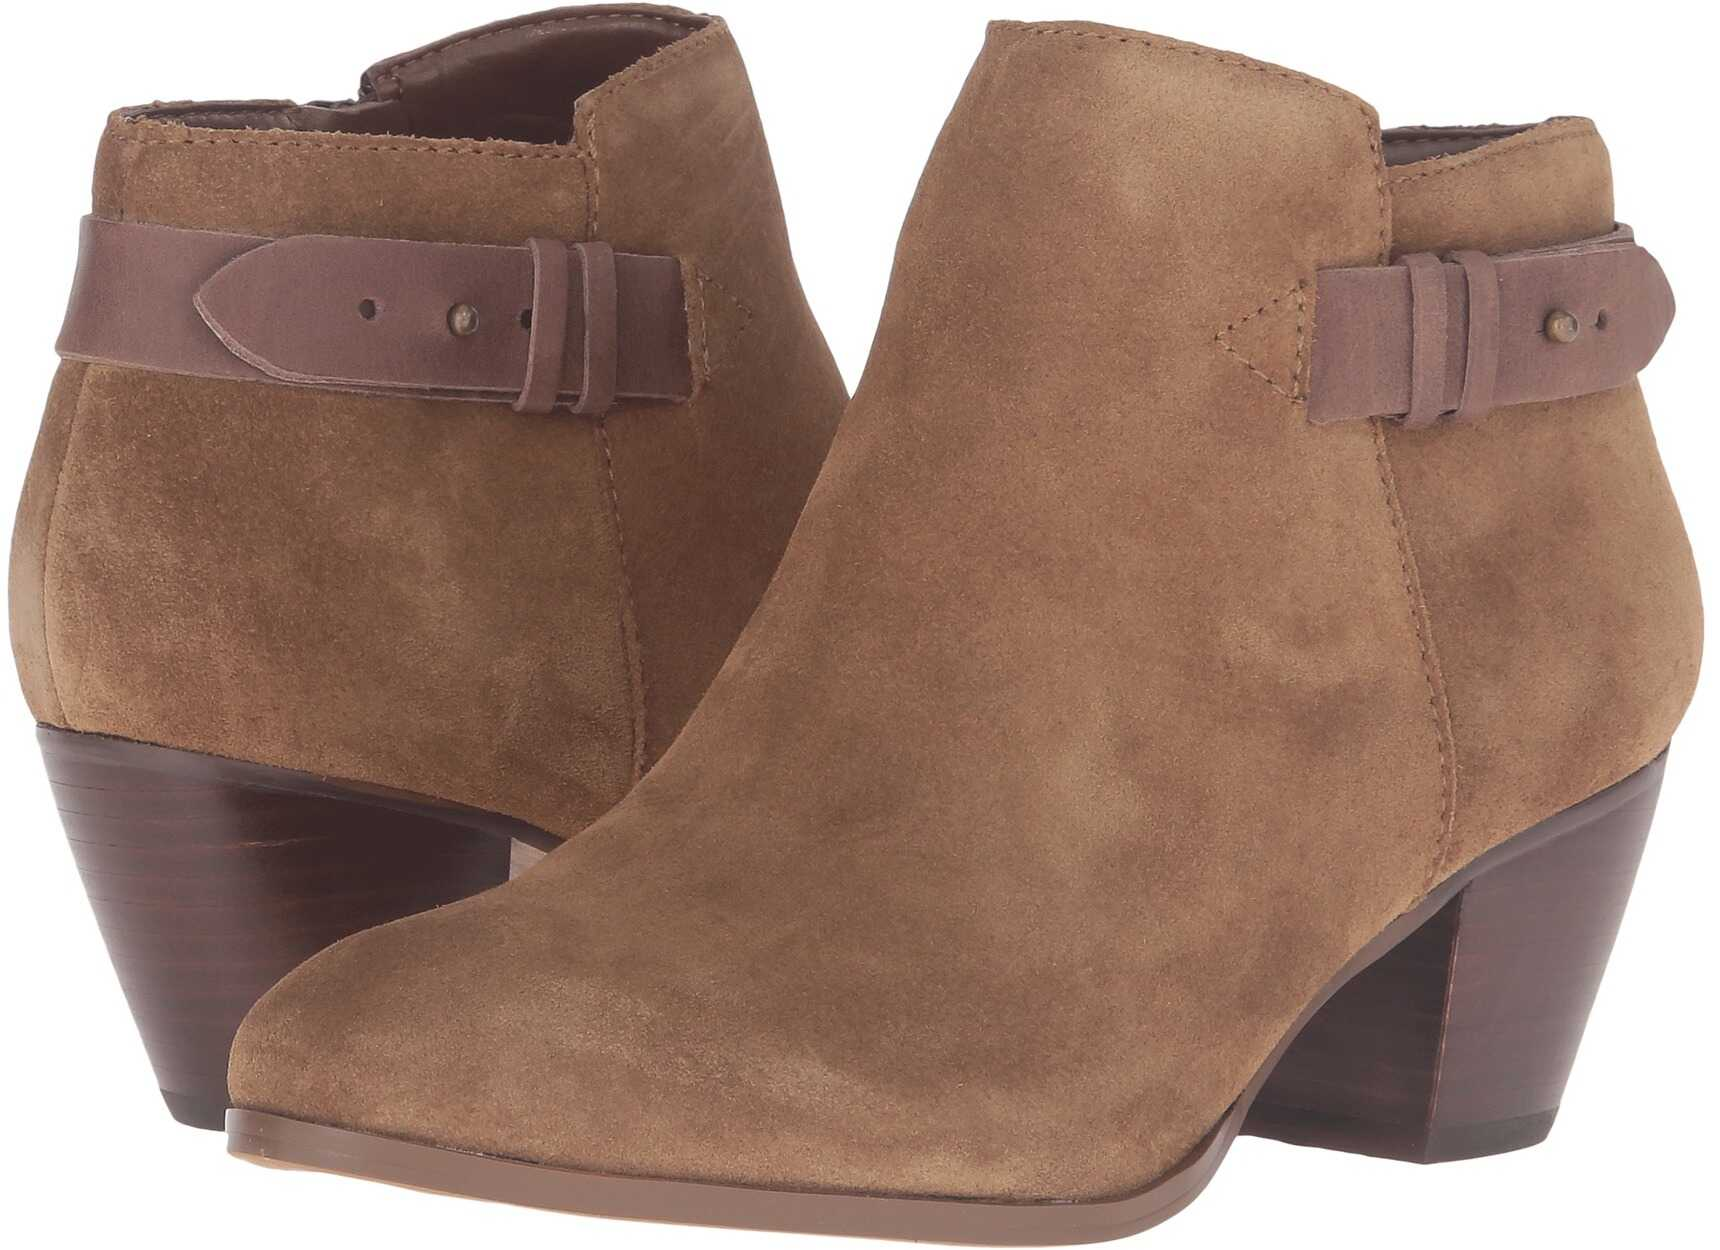 GUESS Geora Medium Brown Suede